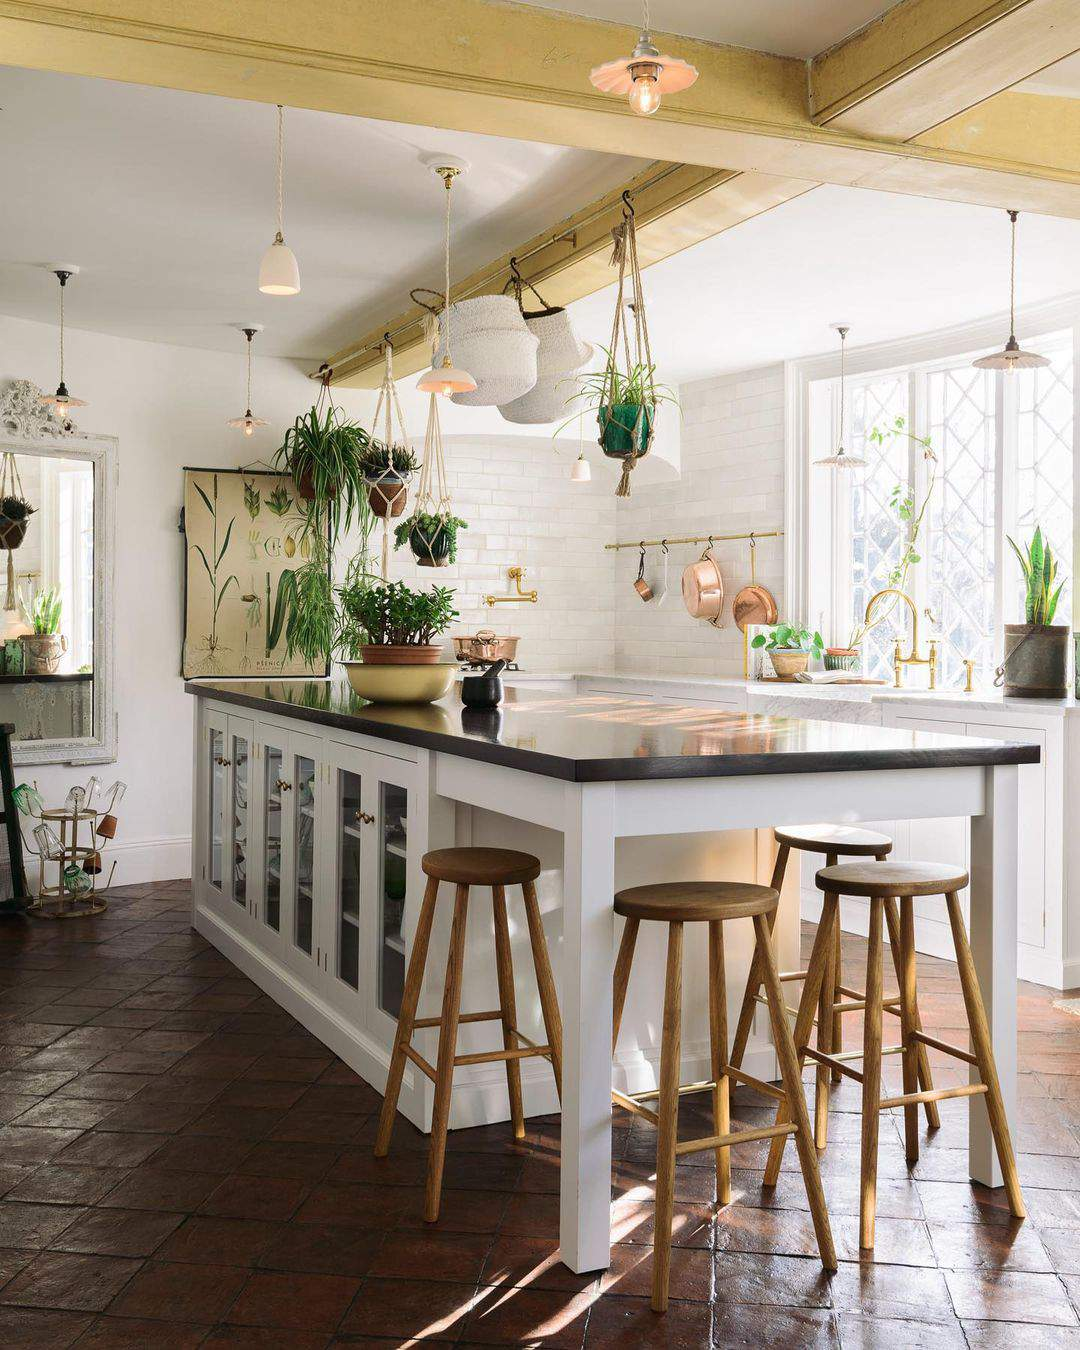 35 Beautiful Home Design Pictures & Ideas images 9